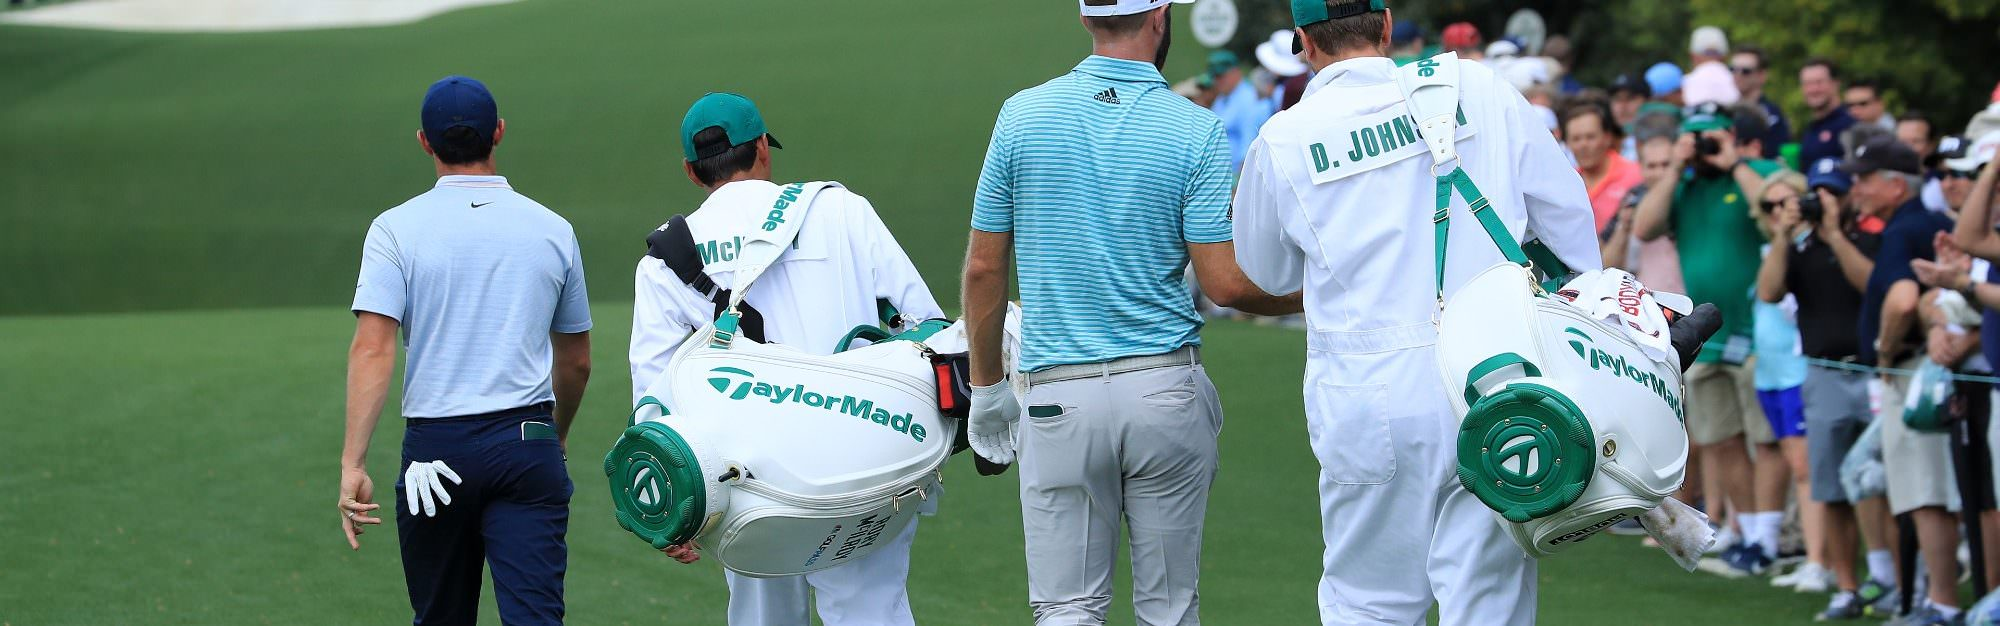 What are the best TaylorMade golf clubs ever made?